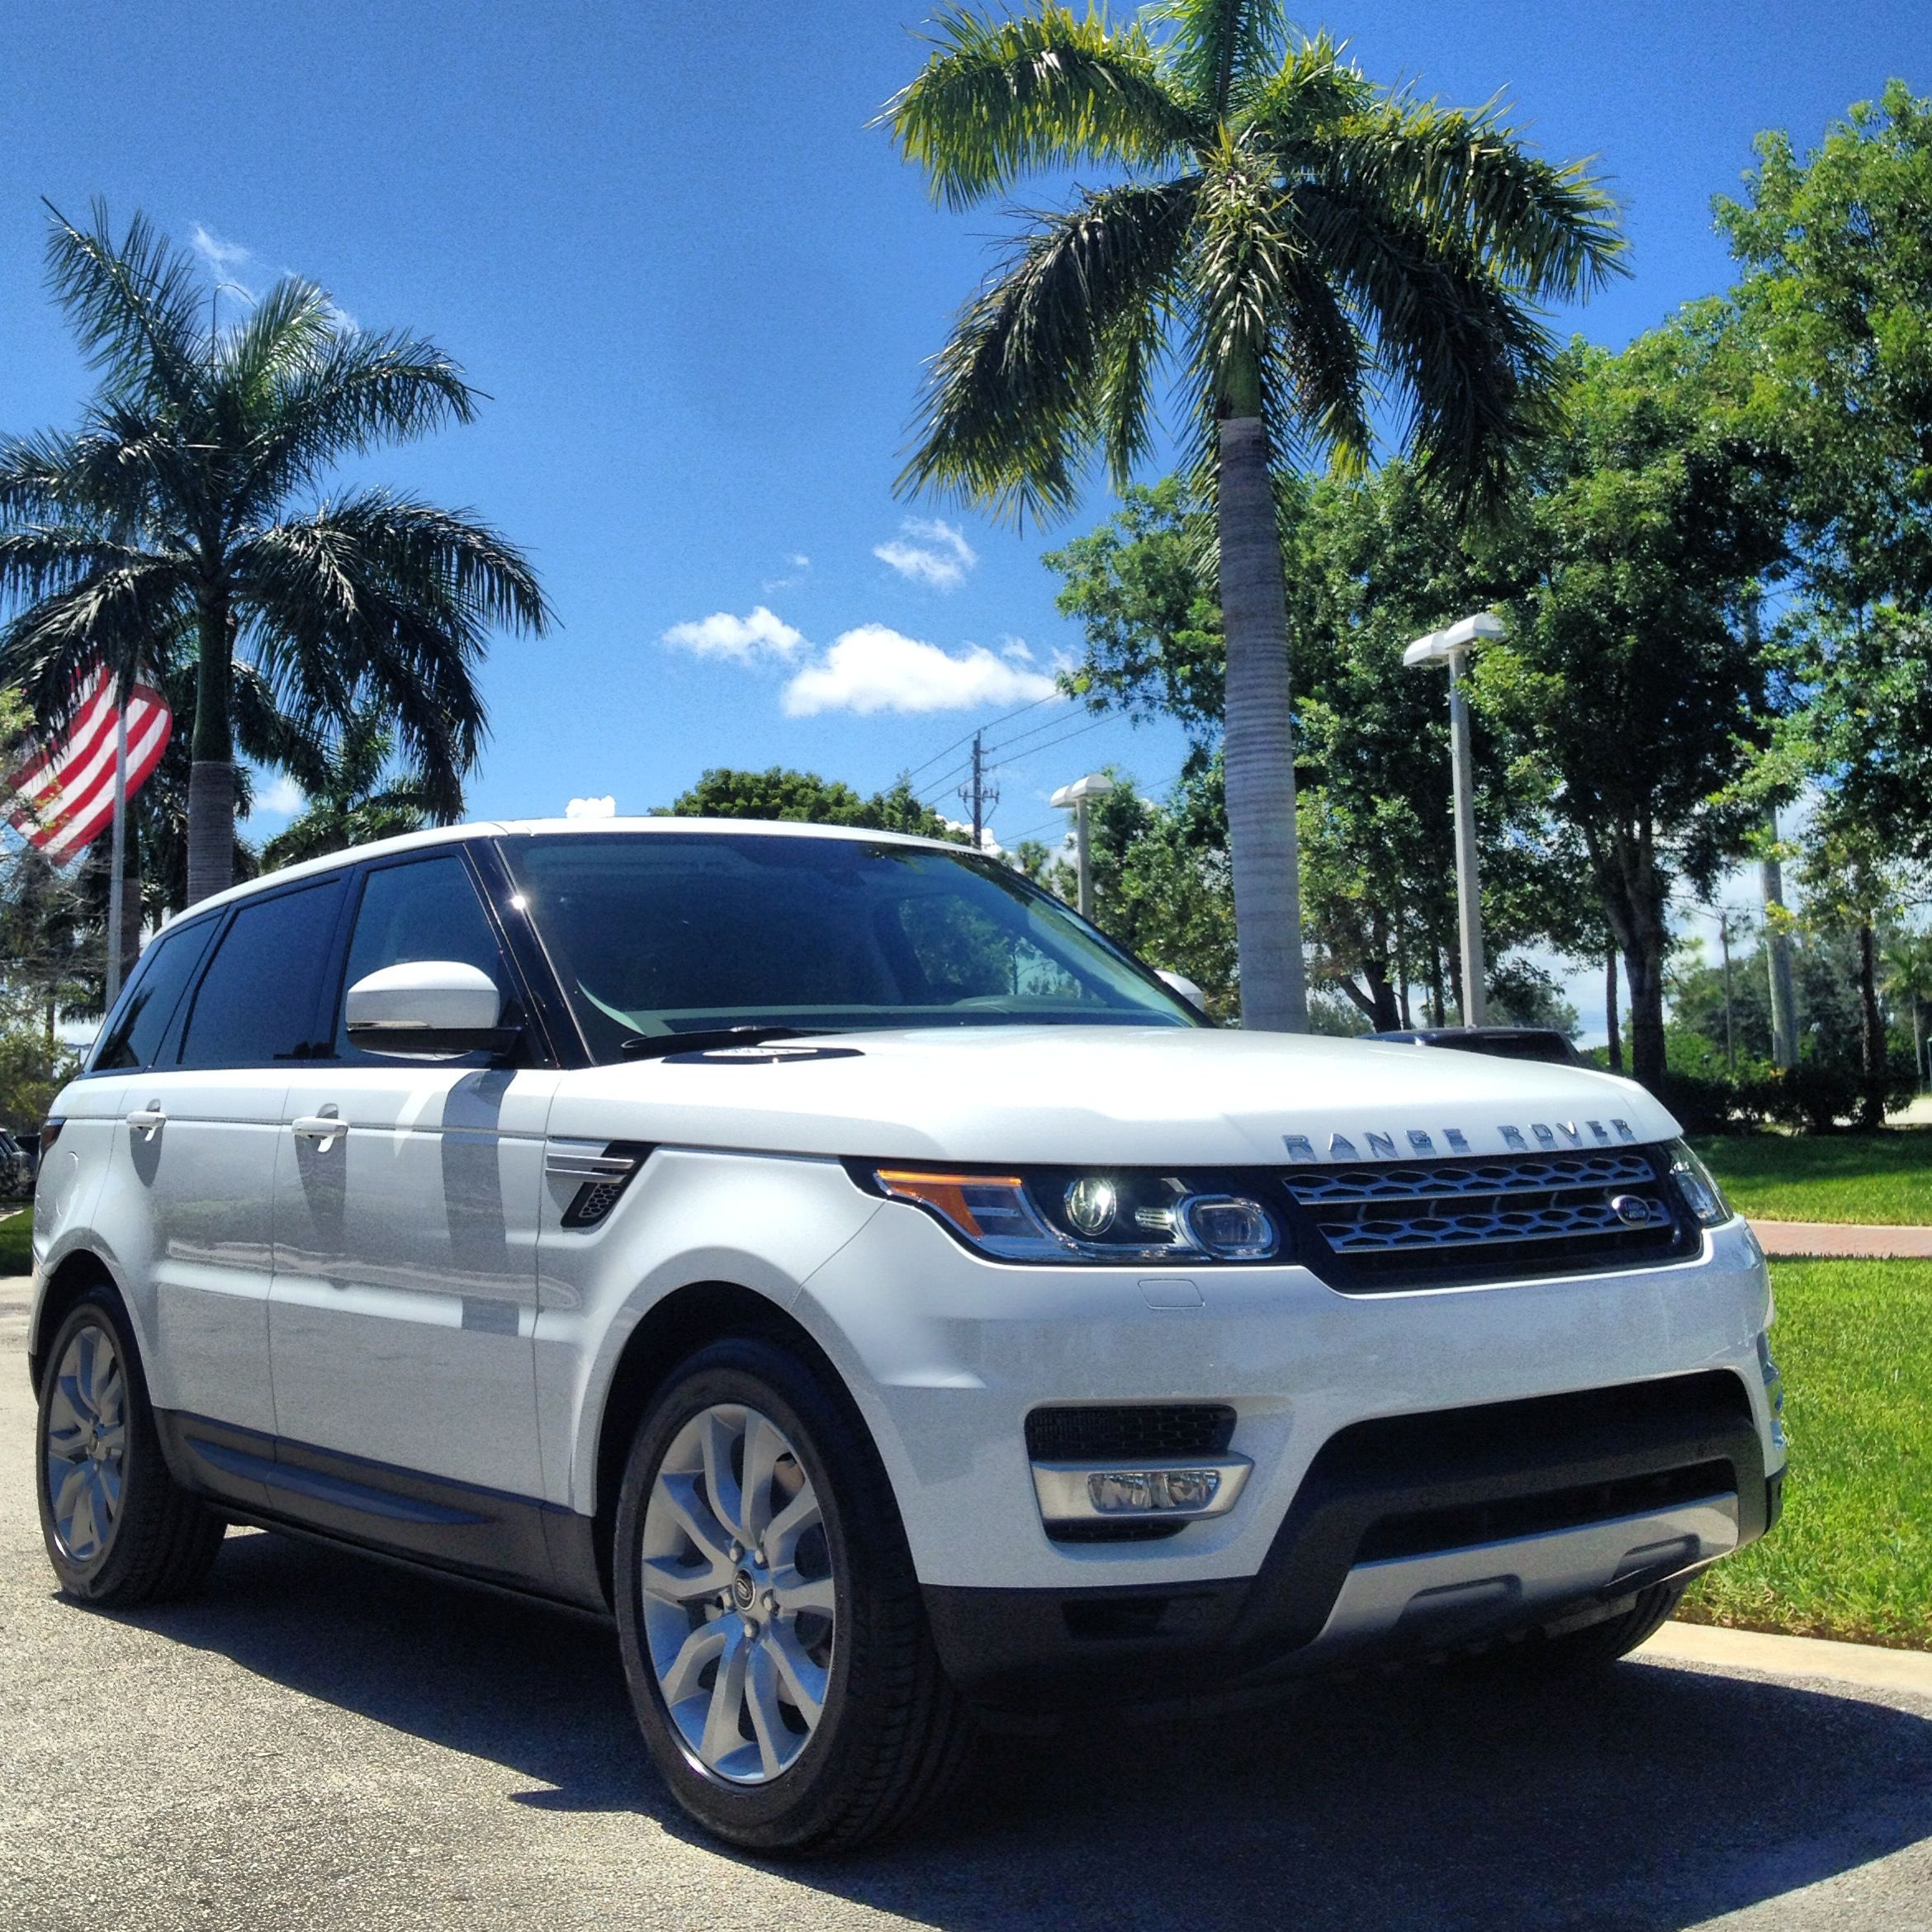 Land Rover Suvs For Sale In West Palm Beach 45 Vehicles In Stock Dream Cars Range Rovers Luxury Cars Range Rover Suv Cars